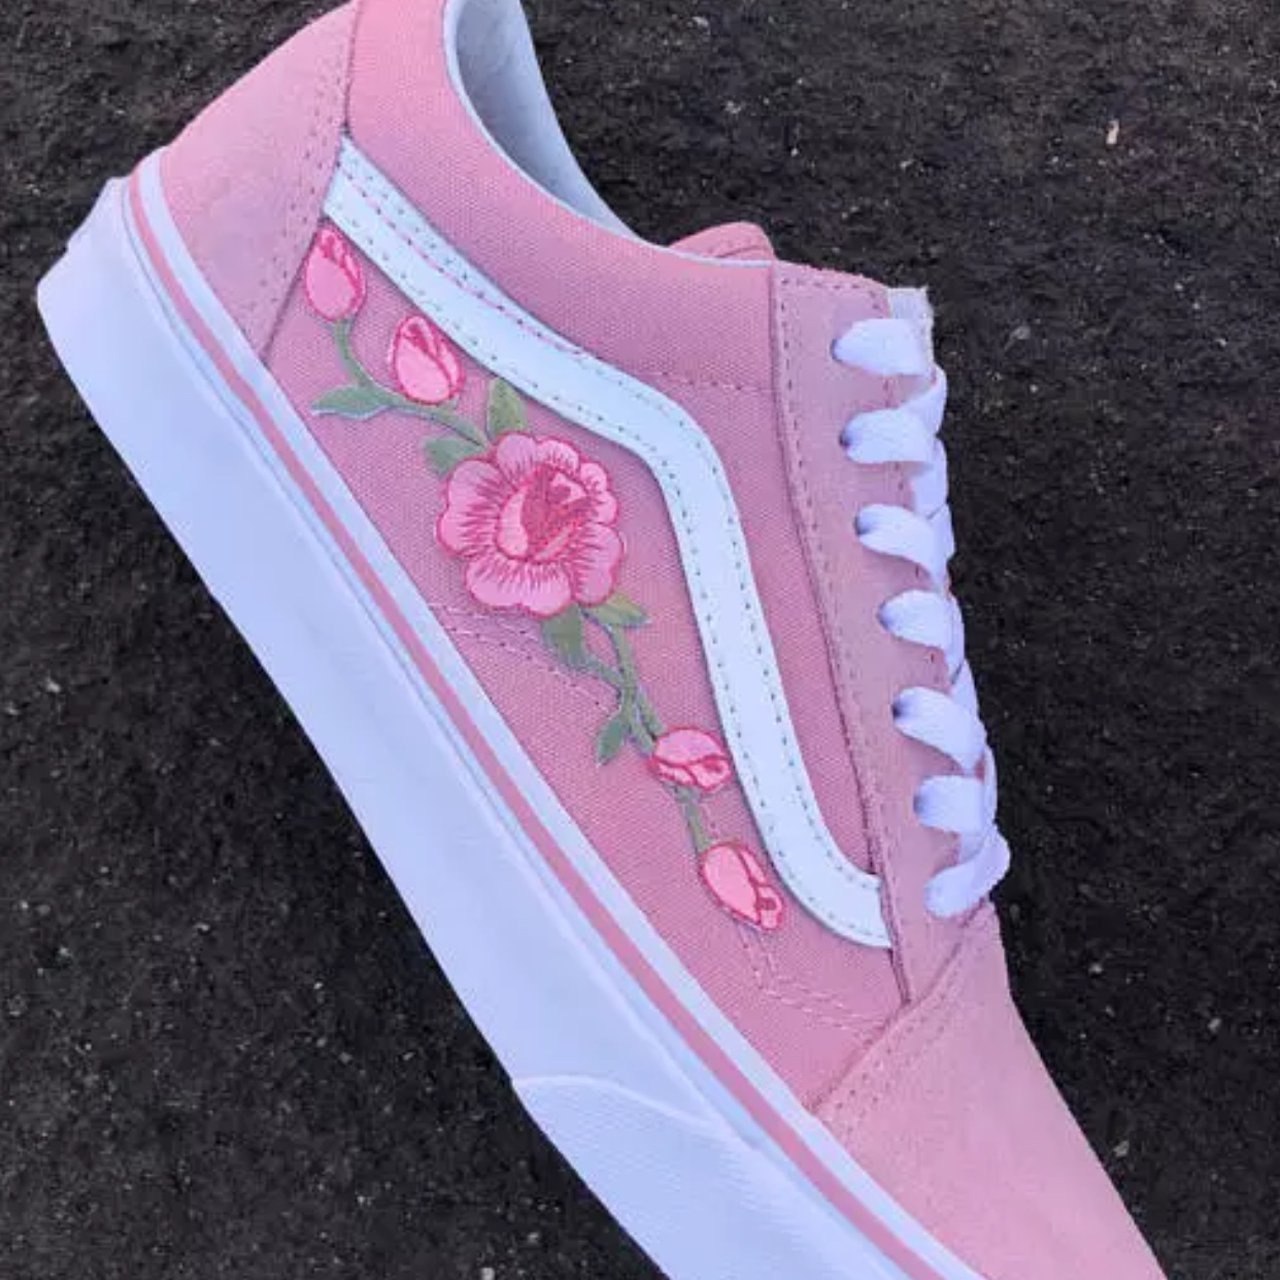 Brand new pink rose Vans any size